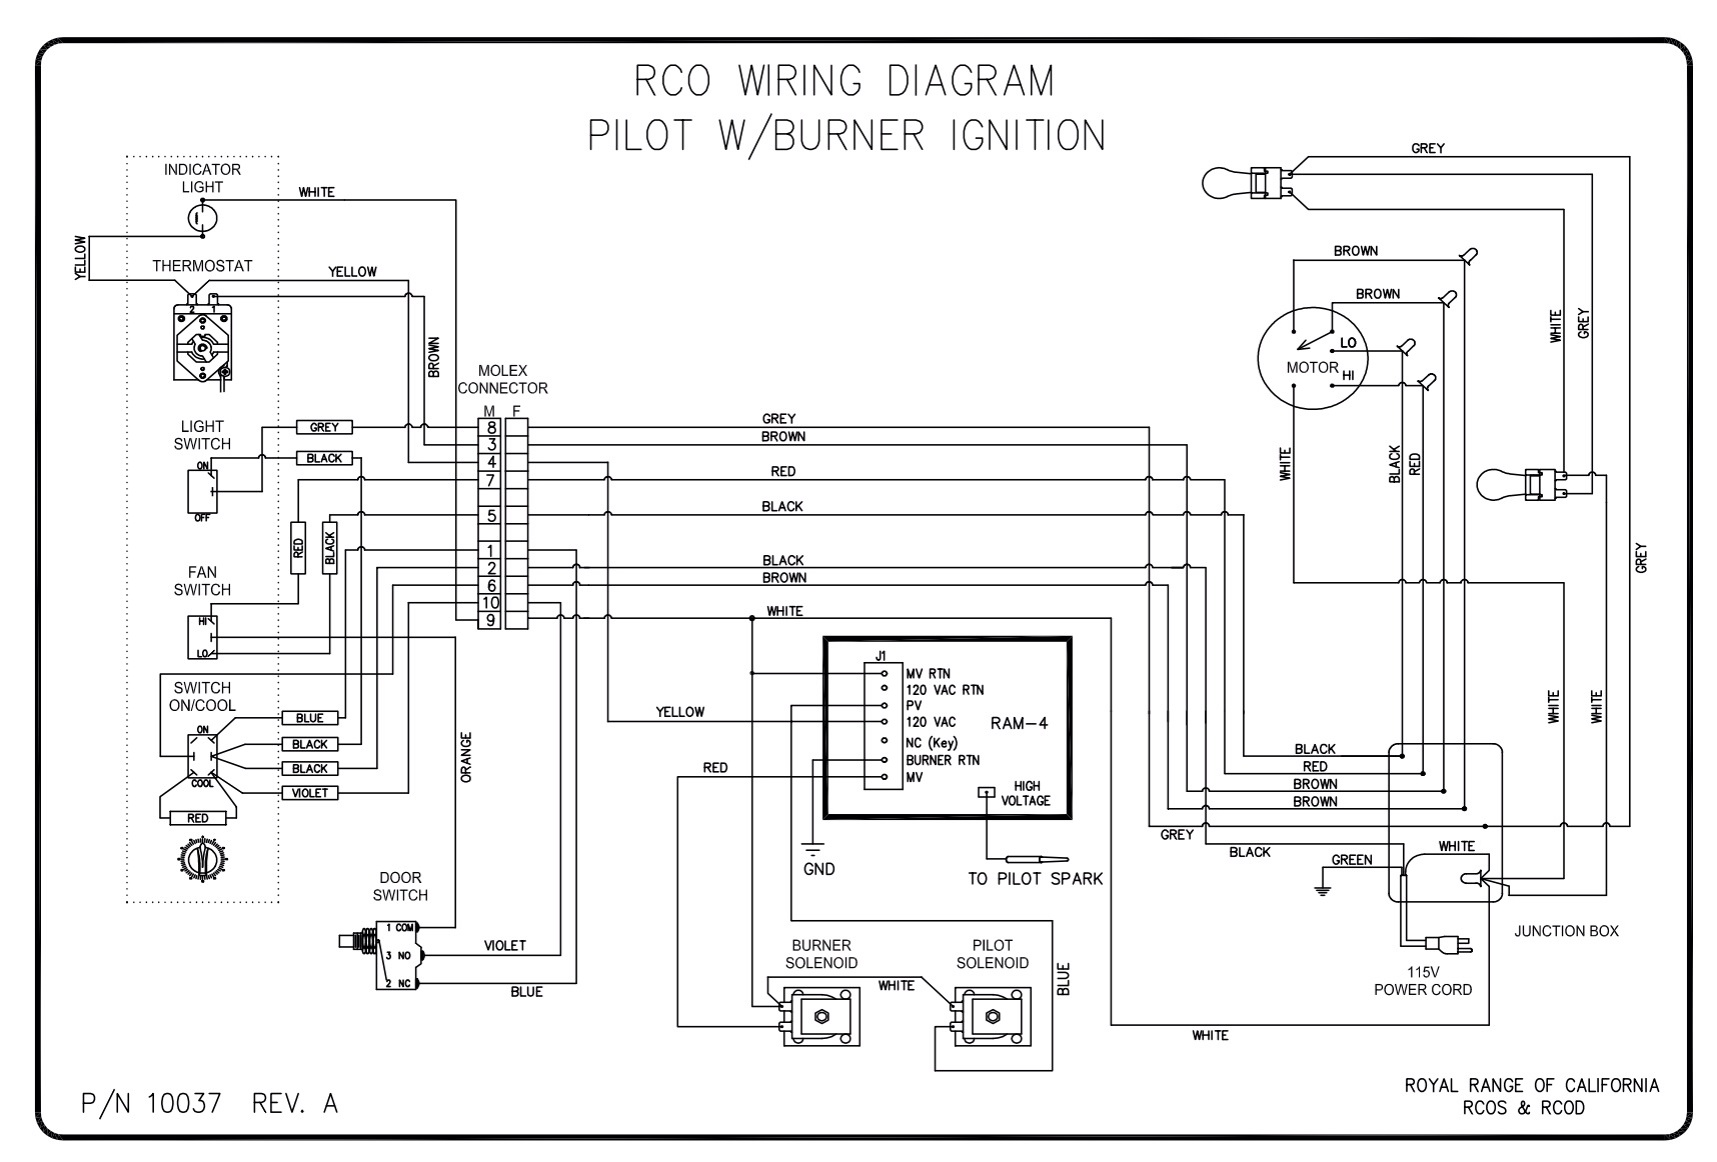 Oven Wiring Red White Black Solutions Wires 2 And 1 Wire Doityourselfcom Diagrams Royal Range Of California